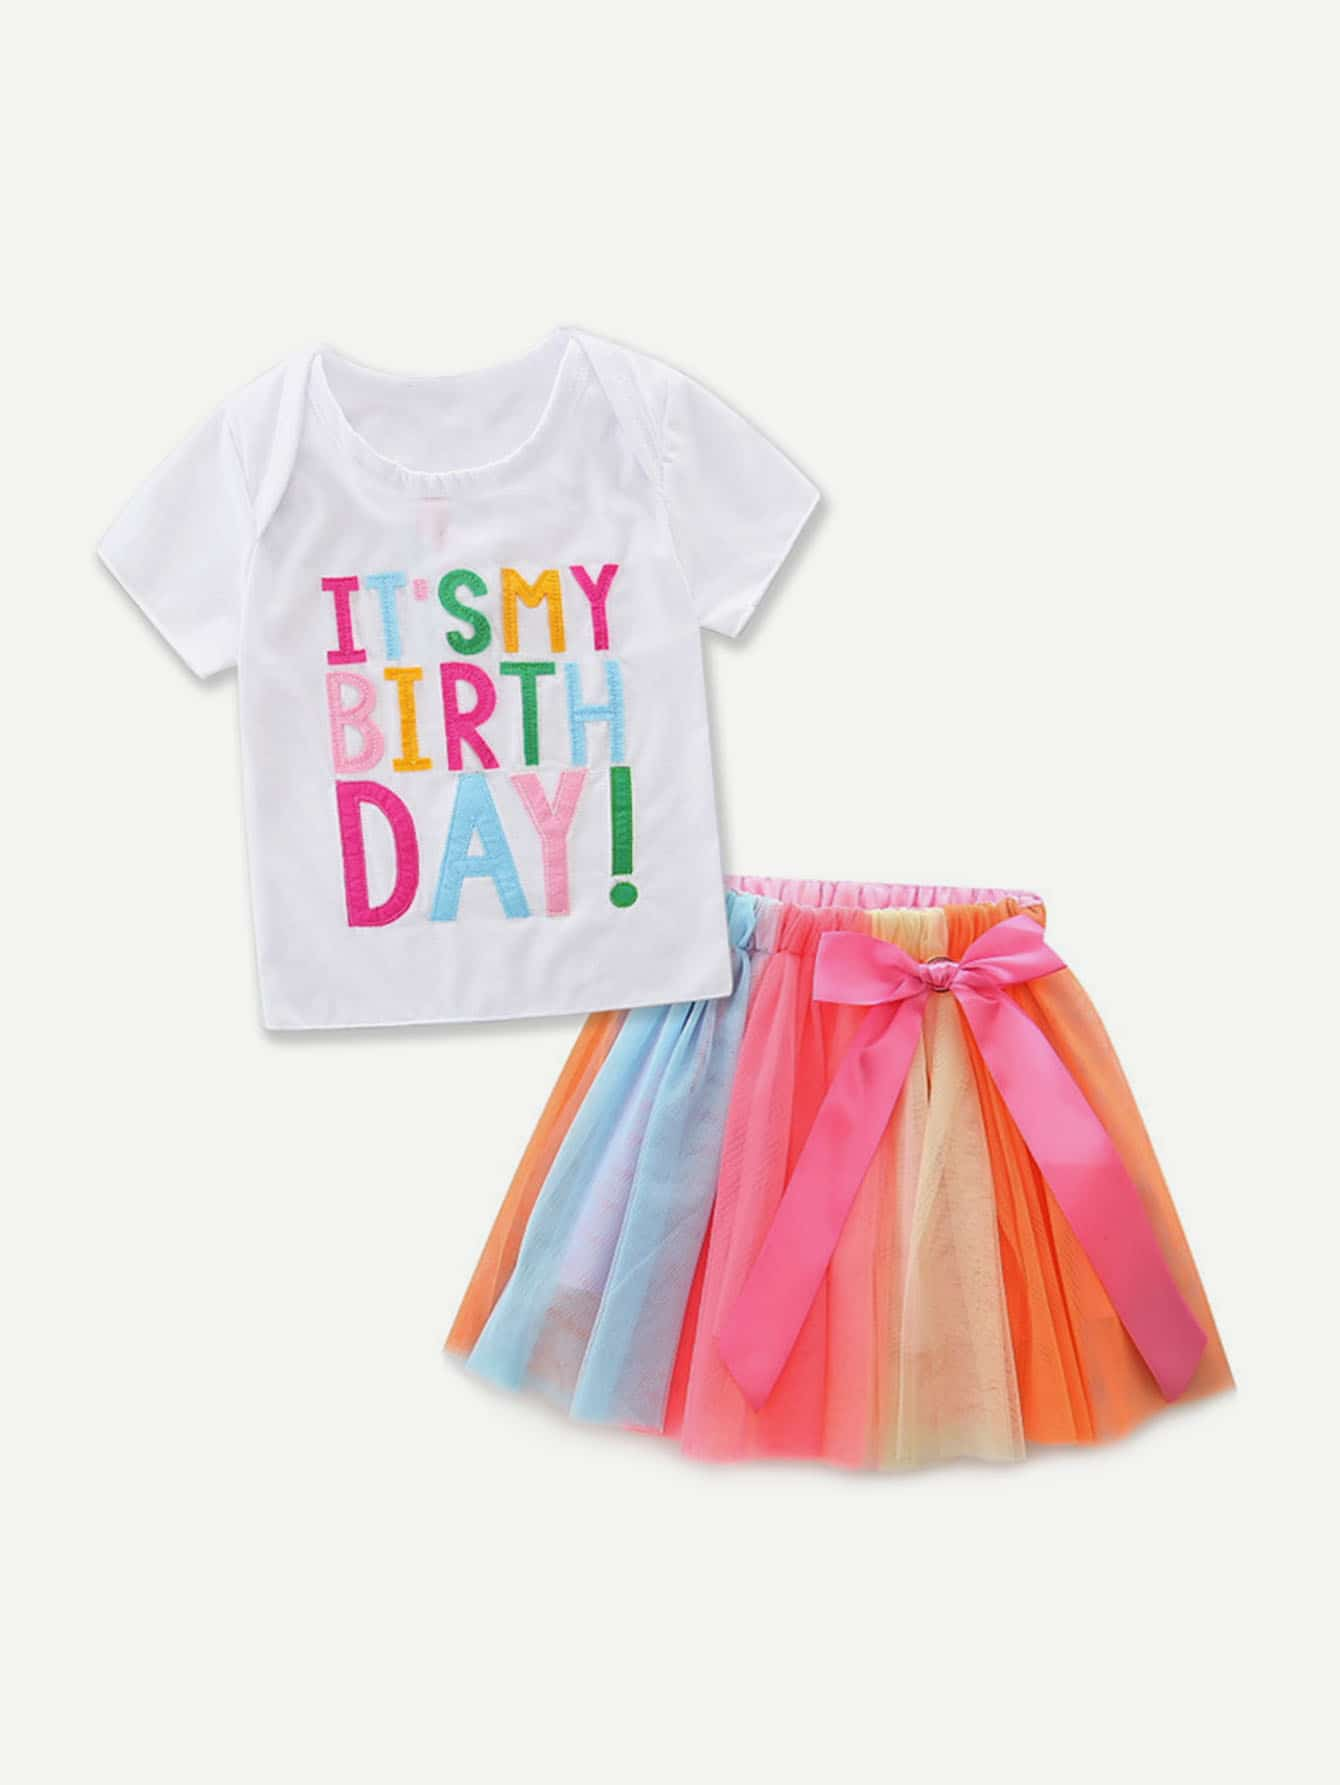 Kids Letter Print Tee With Colorful Skirts